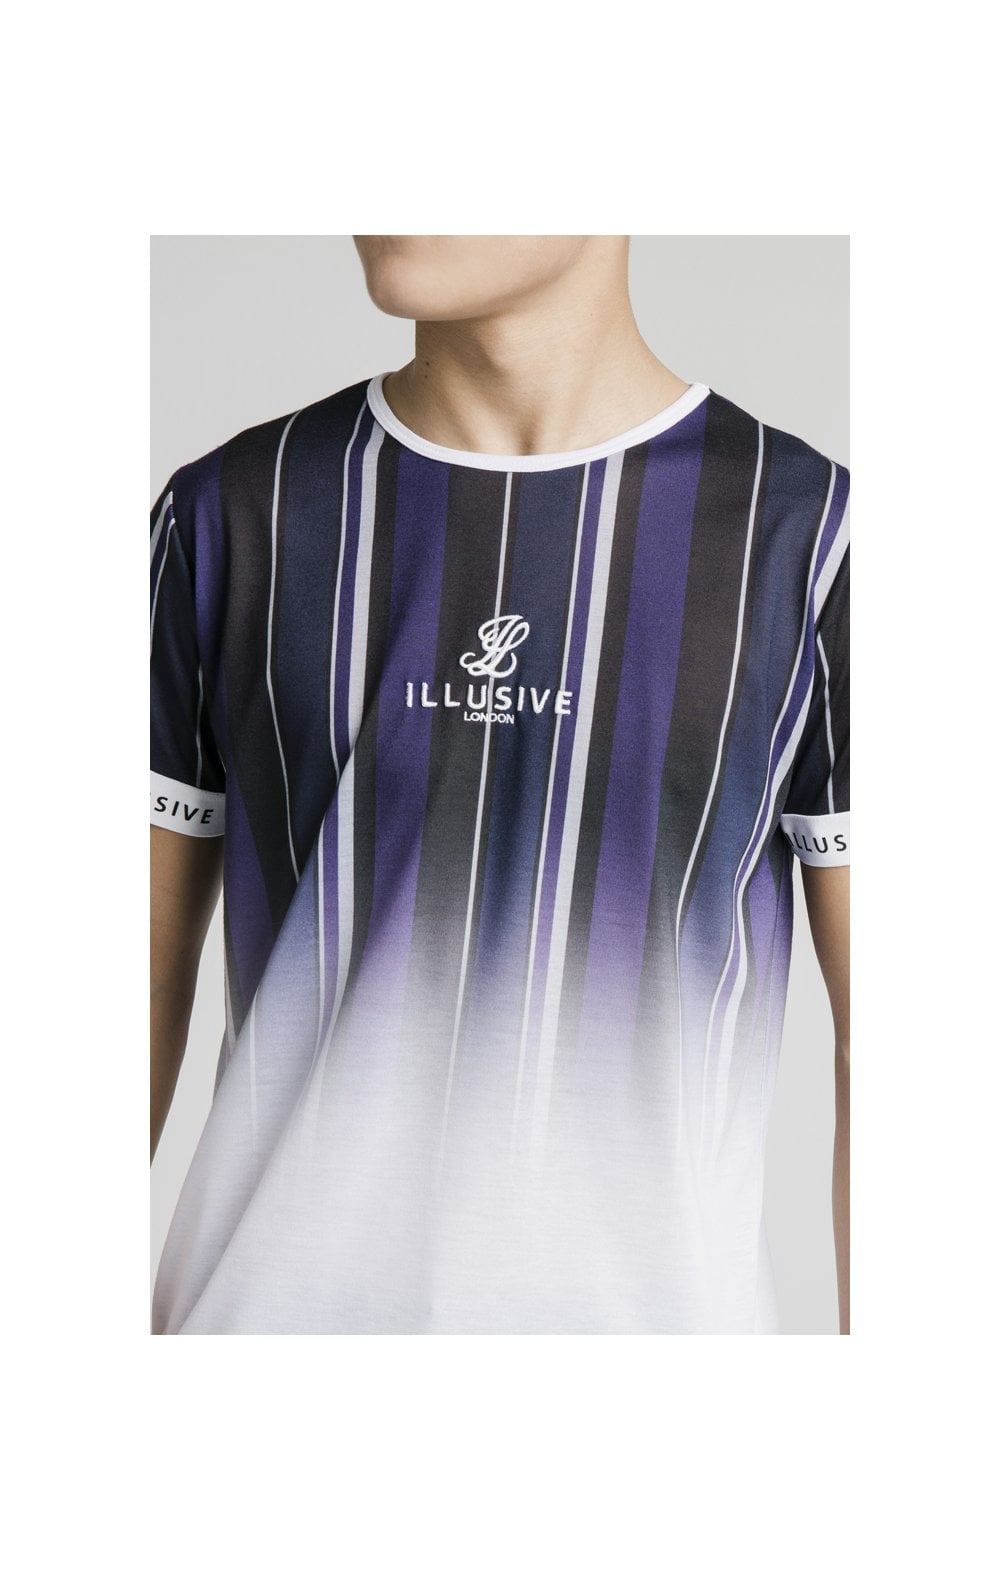 Illusive London Fade Stripe Tech Tee - Navy, Purple, Grey & White